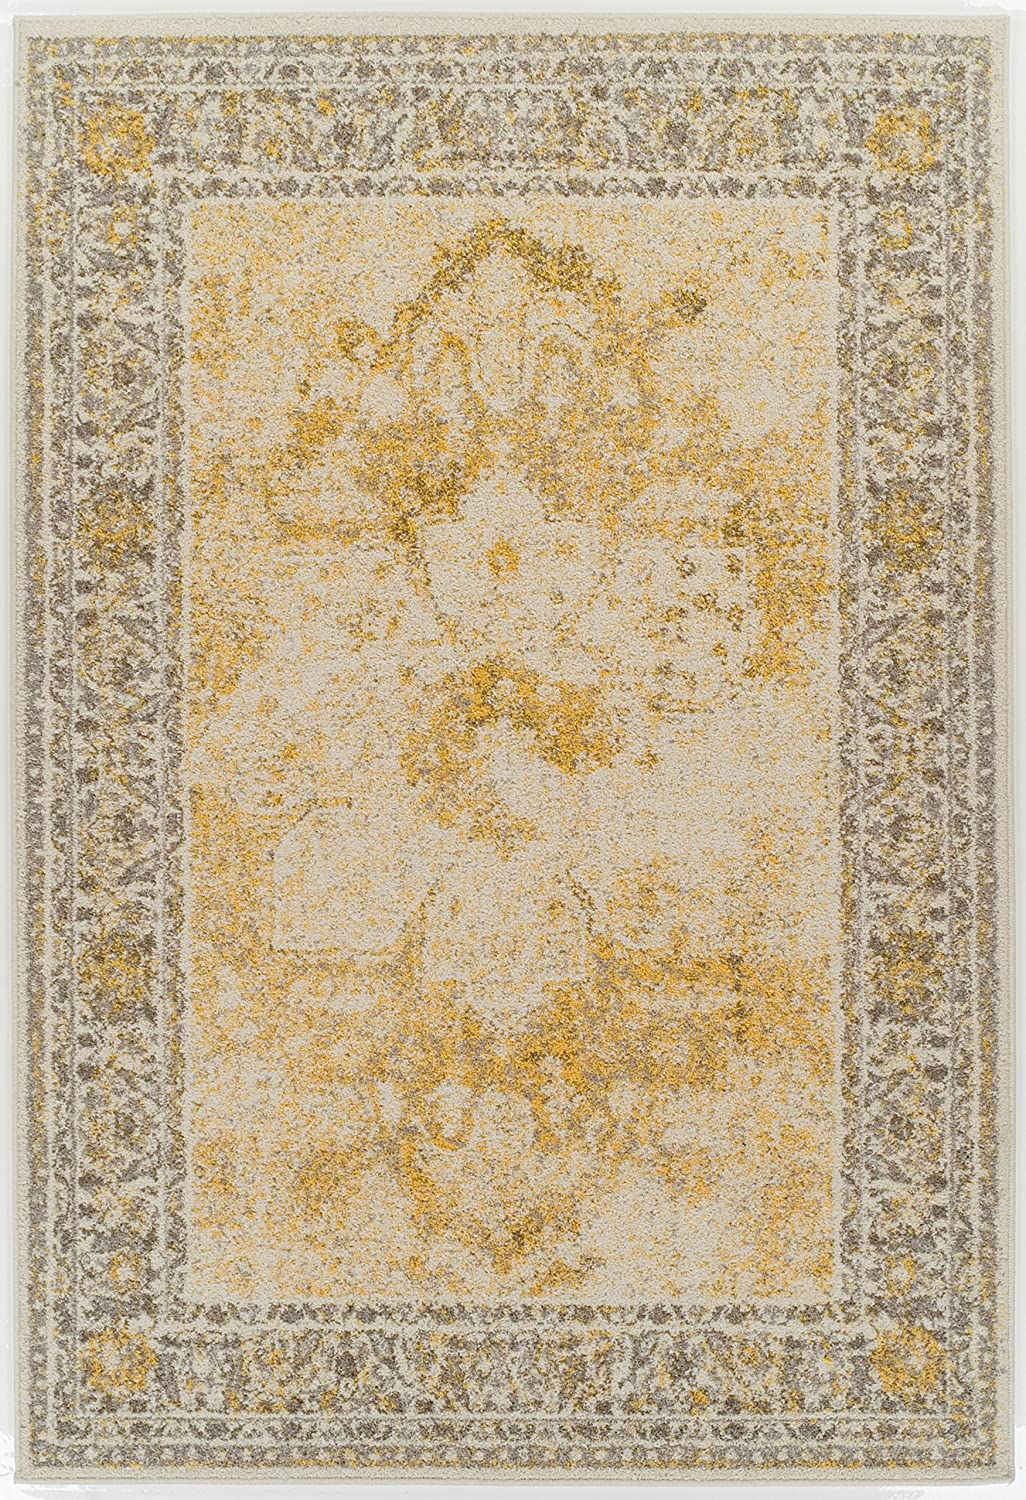 A S Quality Rugs Large Distressed For Living Room 8x11